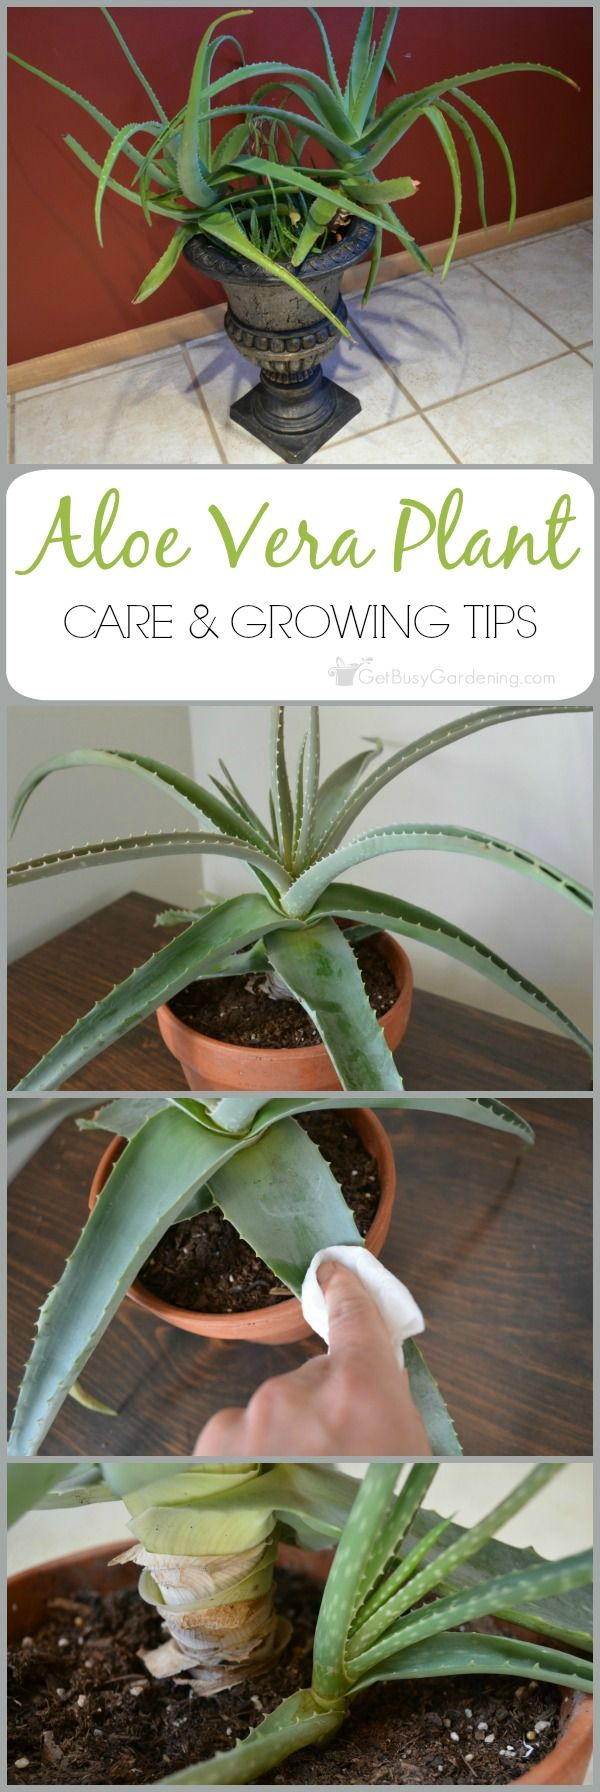 Aloe vera is a very popular plant that isbest known for the healing qualitiesof the gel. Given the properaloe vera plant care, these amazingplants can livefor many years.